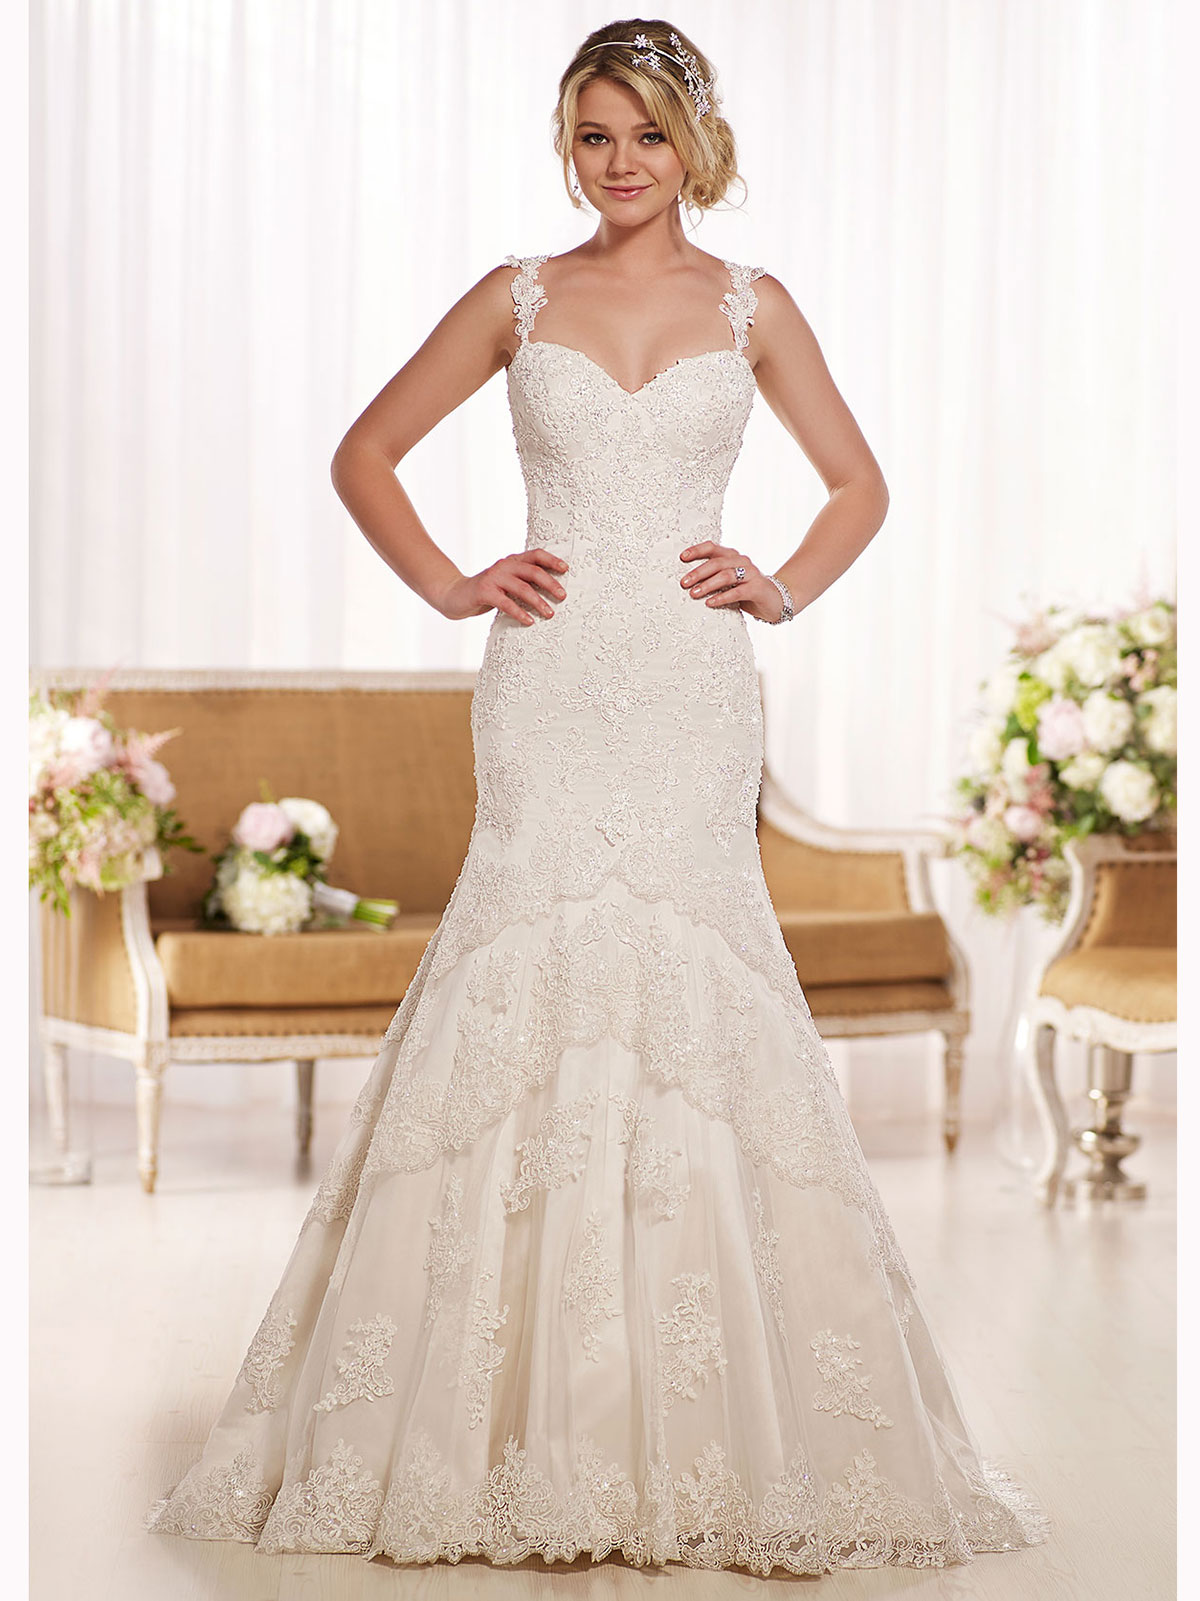 wedding gowns with lace straps wedding dress with straps Over The Shoulder Lace Strap Essense Wedding Dress D